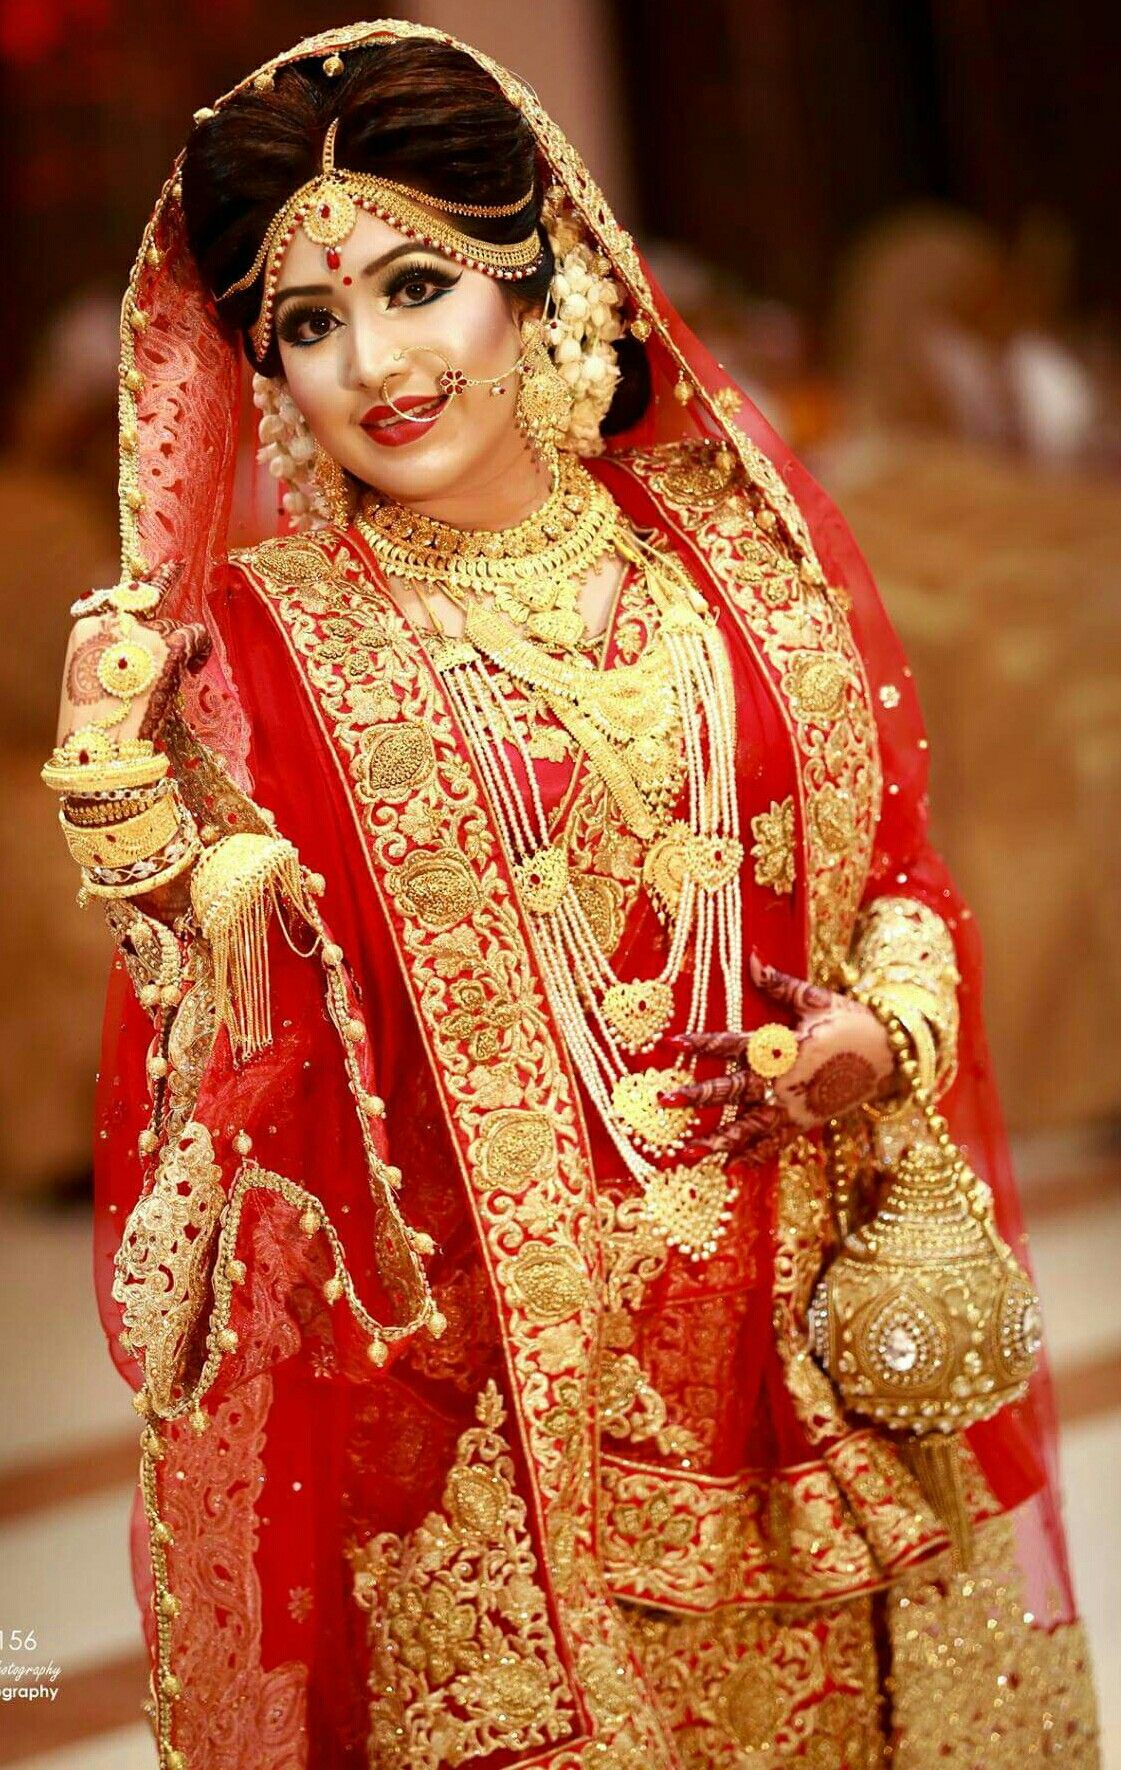 Pin by Padmalaya Jena on вℓυѕнιиg вяι∂є | Indian bridal ...